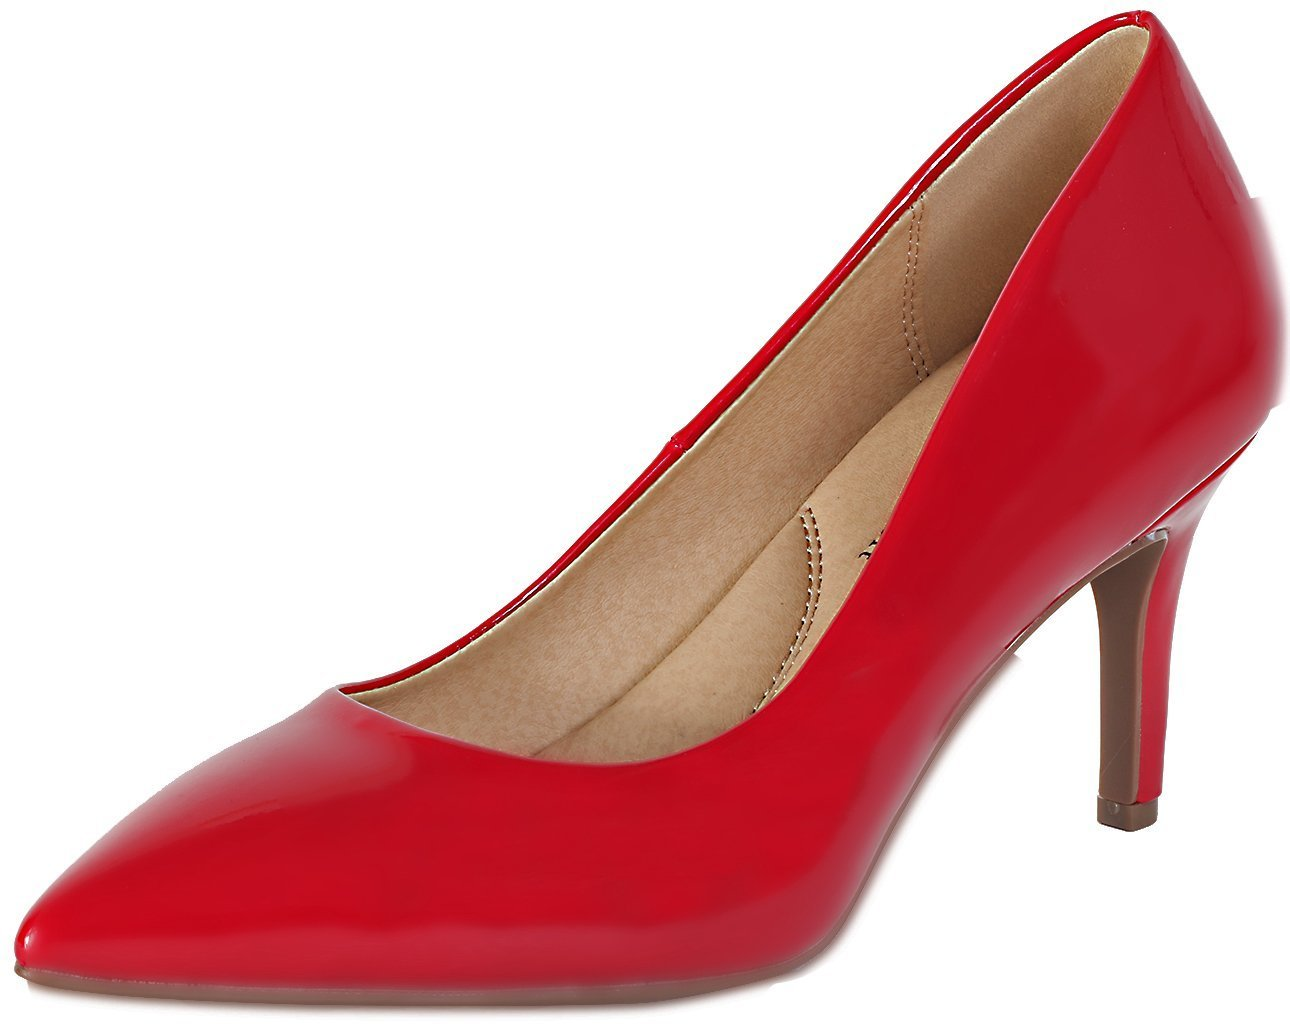 City Classified Comfort Coen-h Medium High Heel Pointy Toe PumpSuper Cushioned Memory Foam Inner Sole Red Patent 8